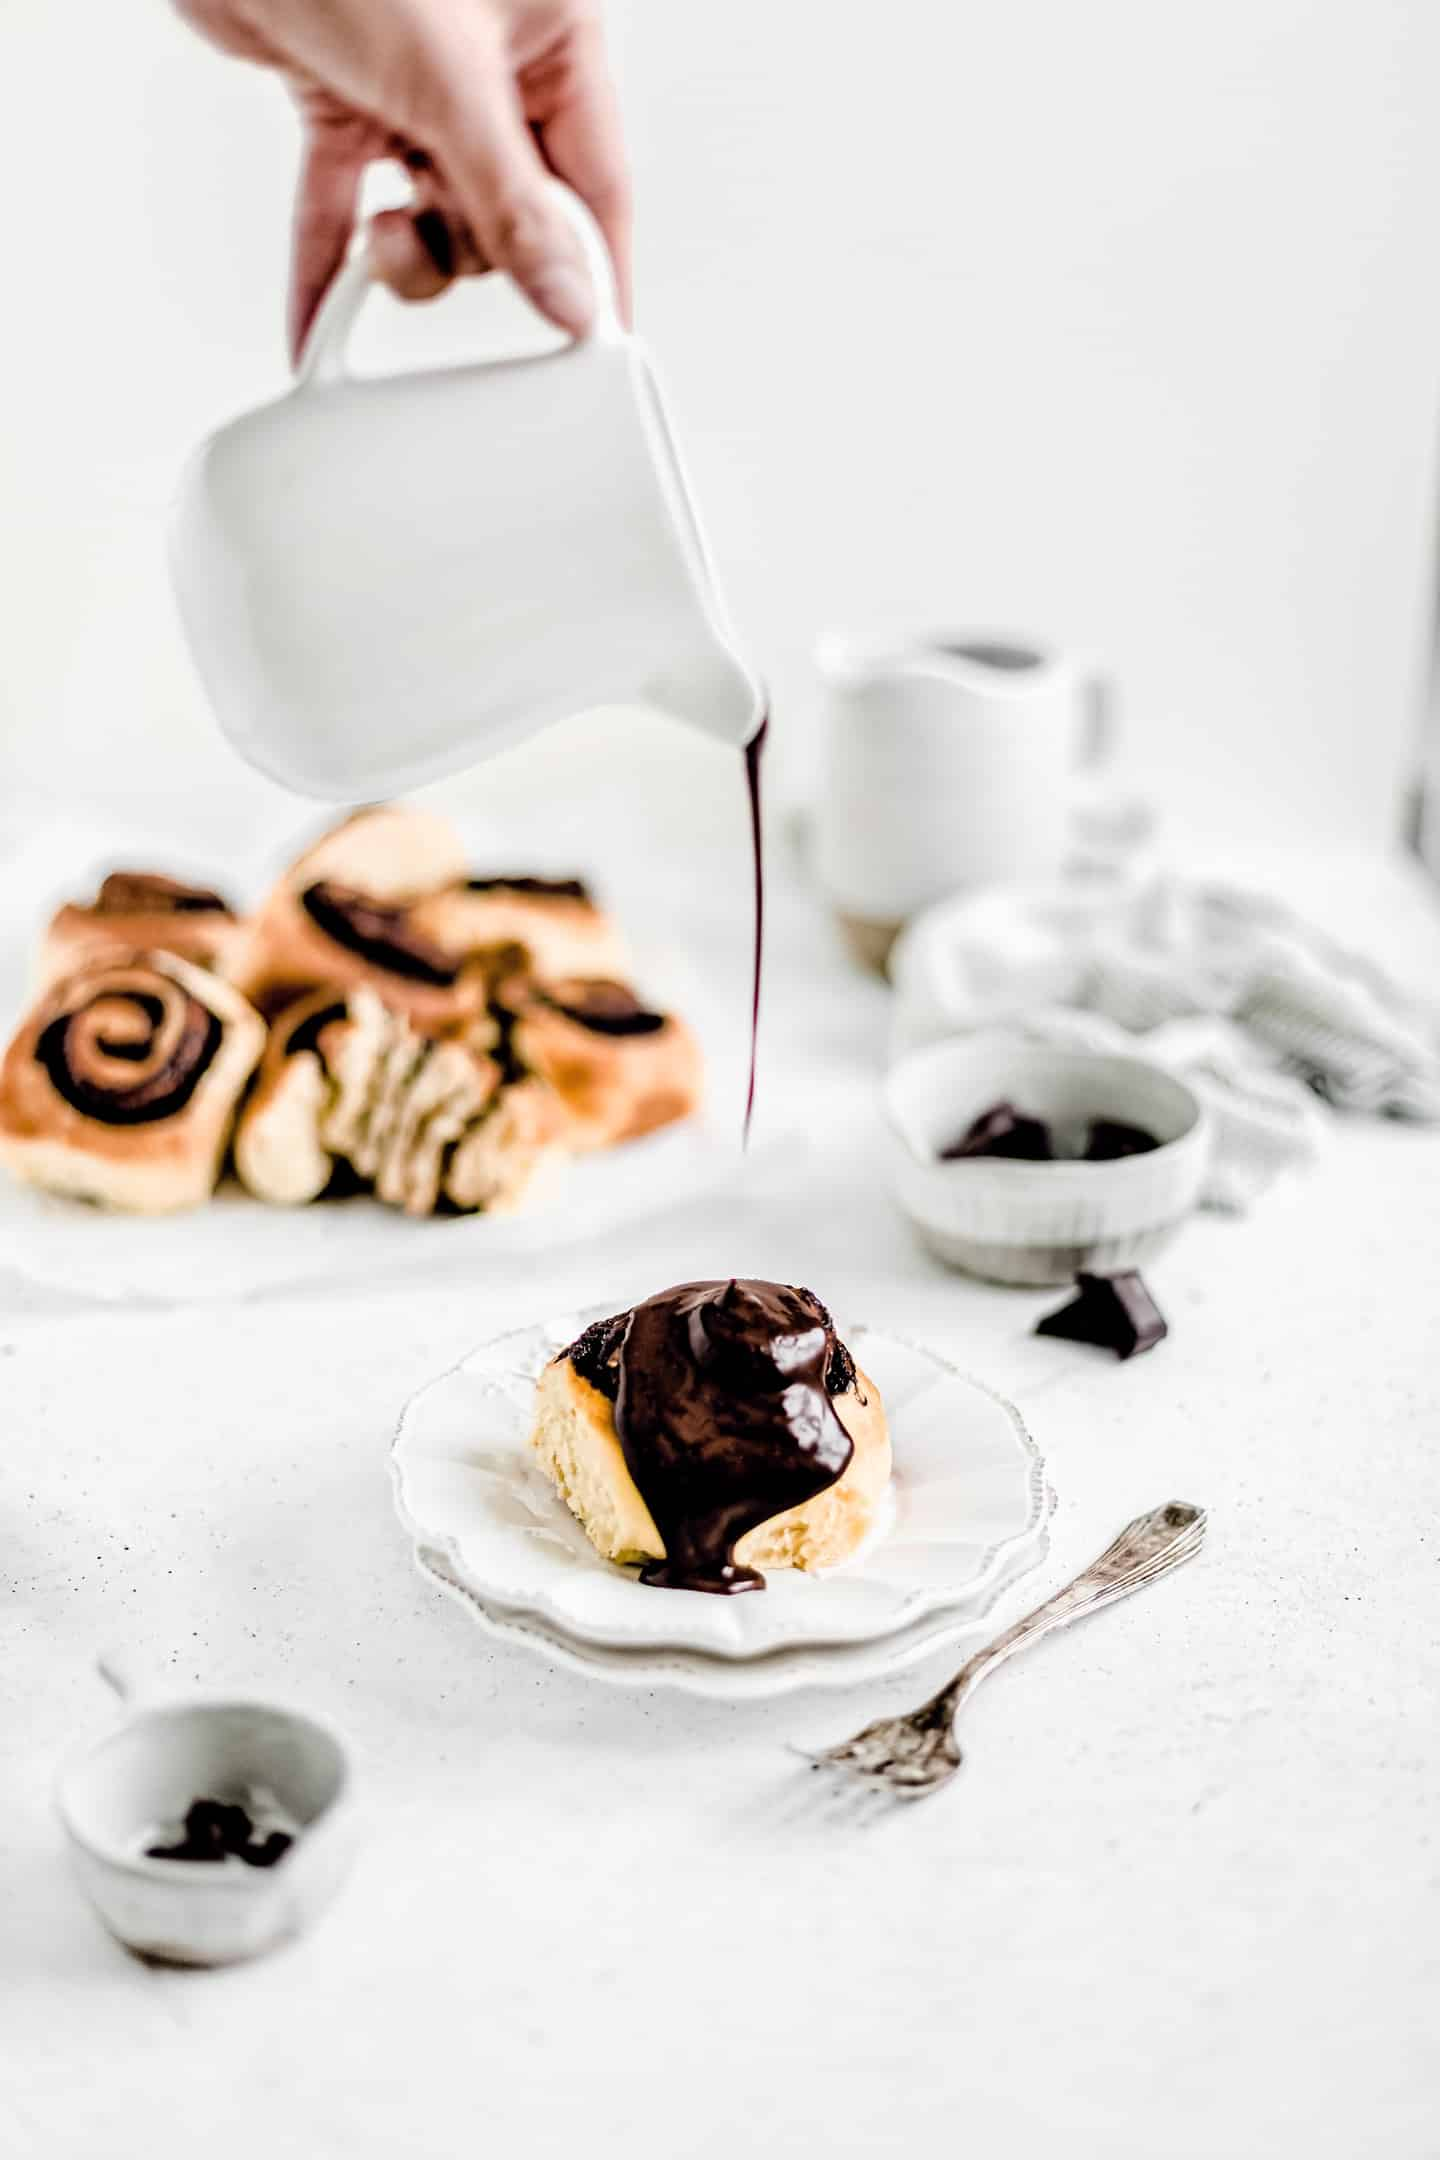 chocolate rolls with chocolate sauce